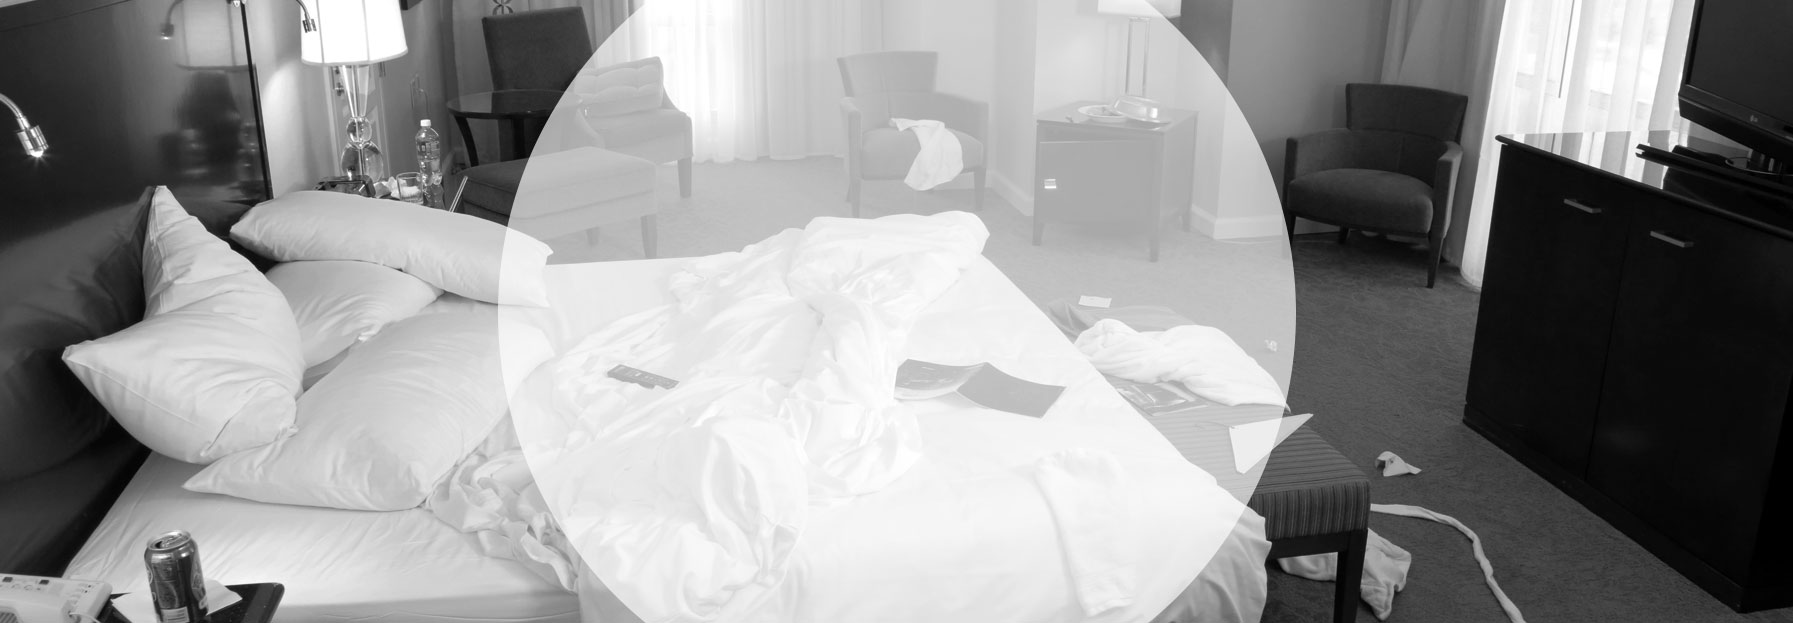 hotel cleaning jani-king